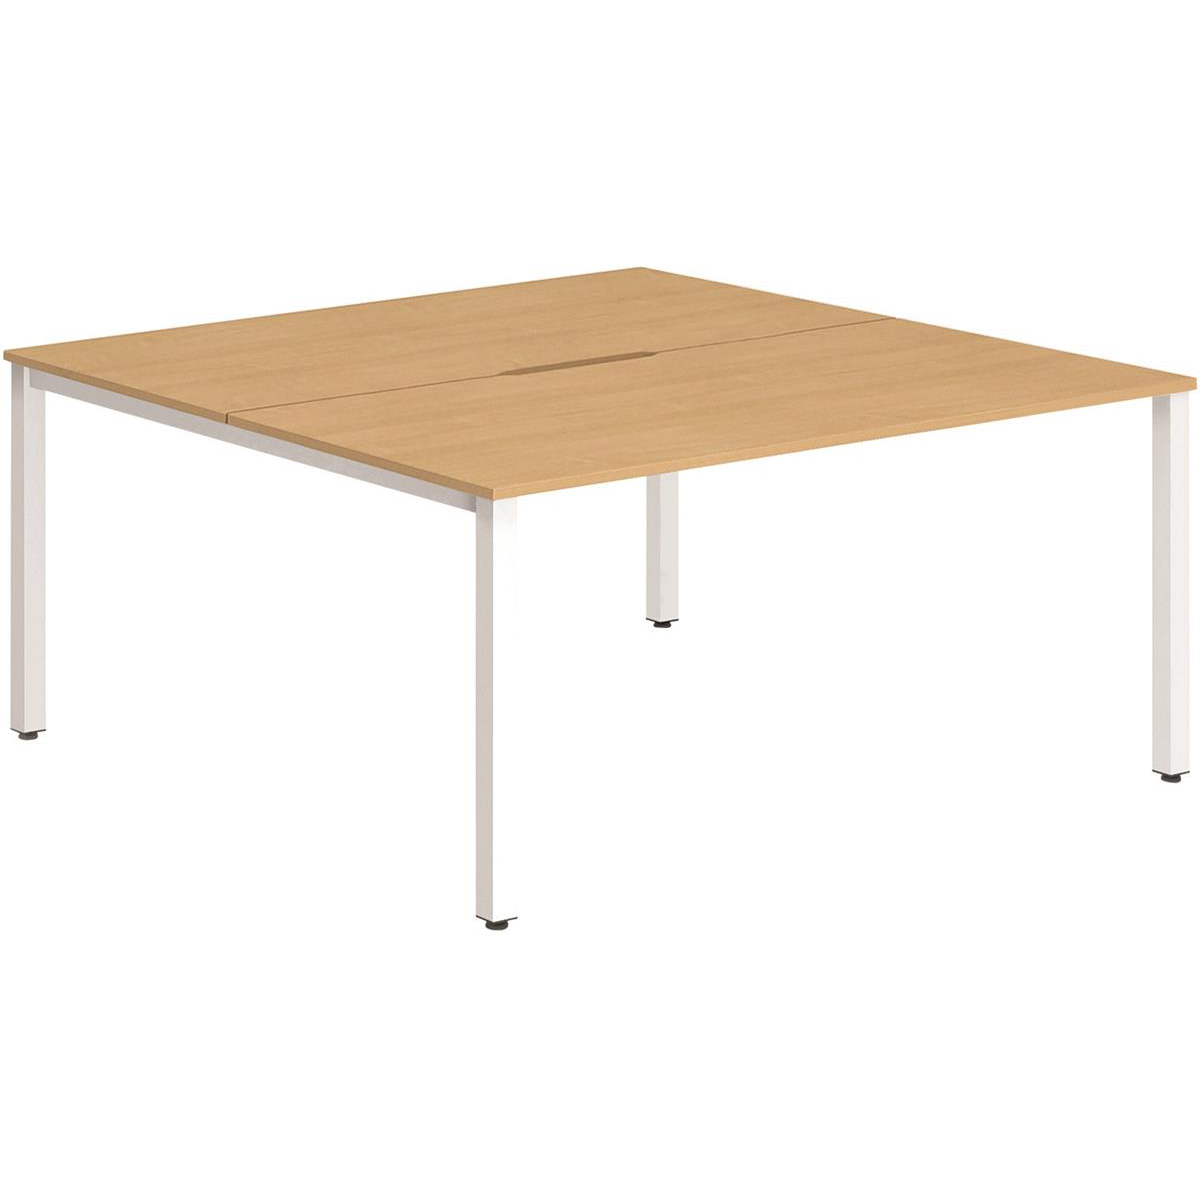 Trexus Bench Desk 2 Person Back to Back Configuration White Leg 1600x1600mm Beech Ref BE152